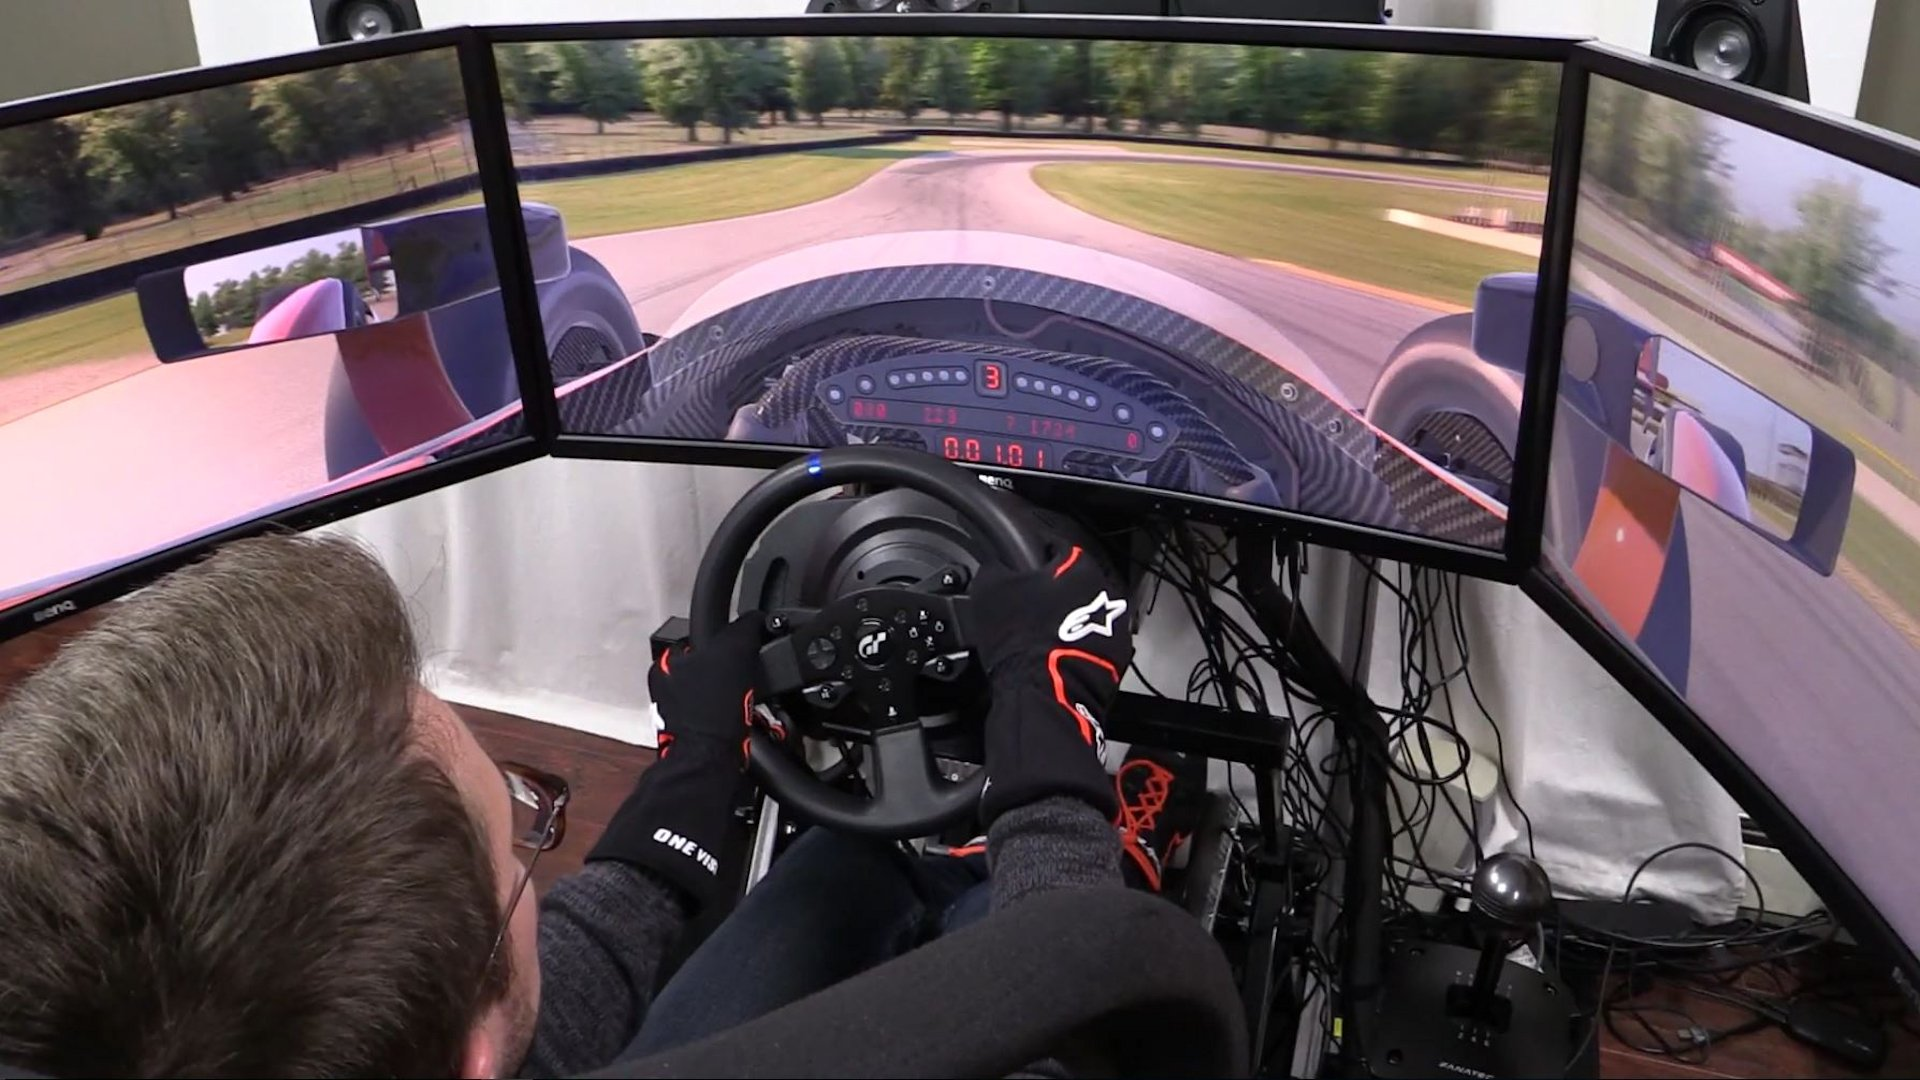 thrustmaster-t300-gt-edition-wheel-and-pedals-review-7